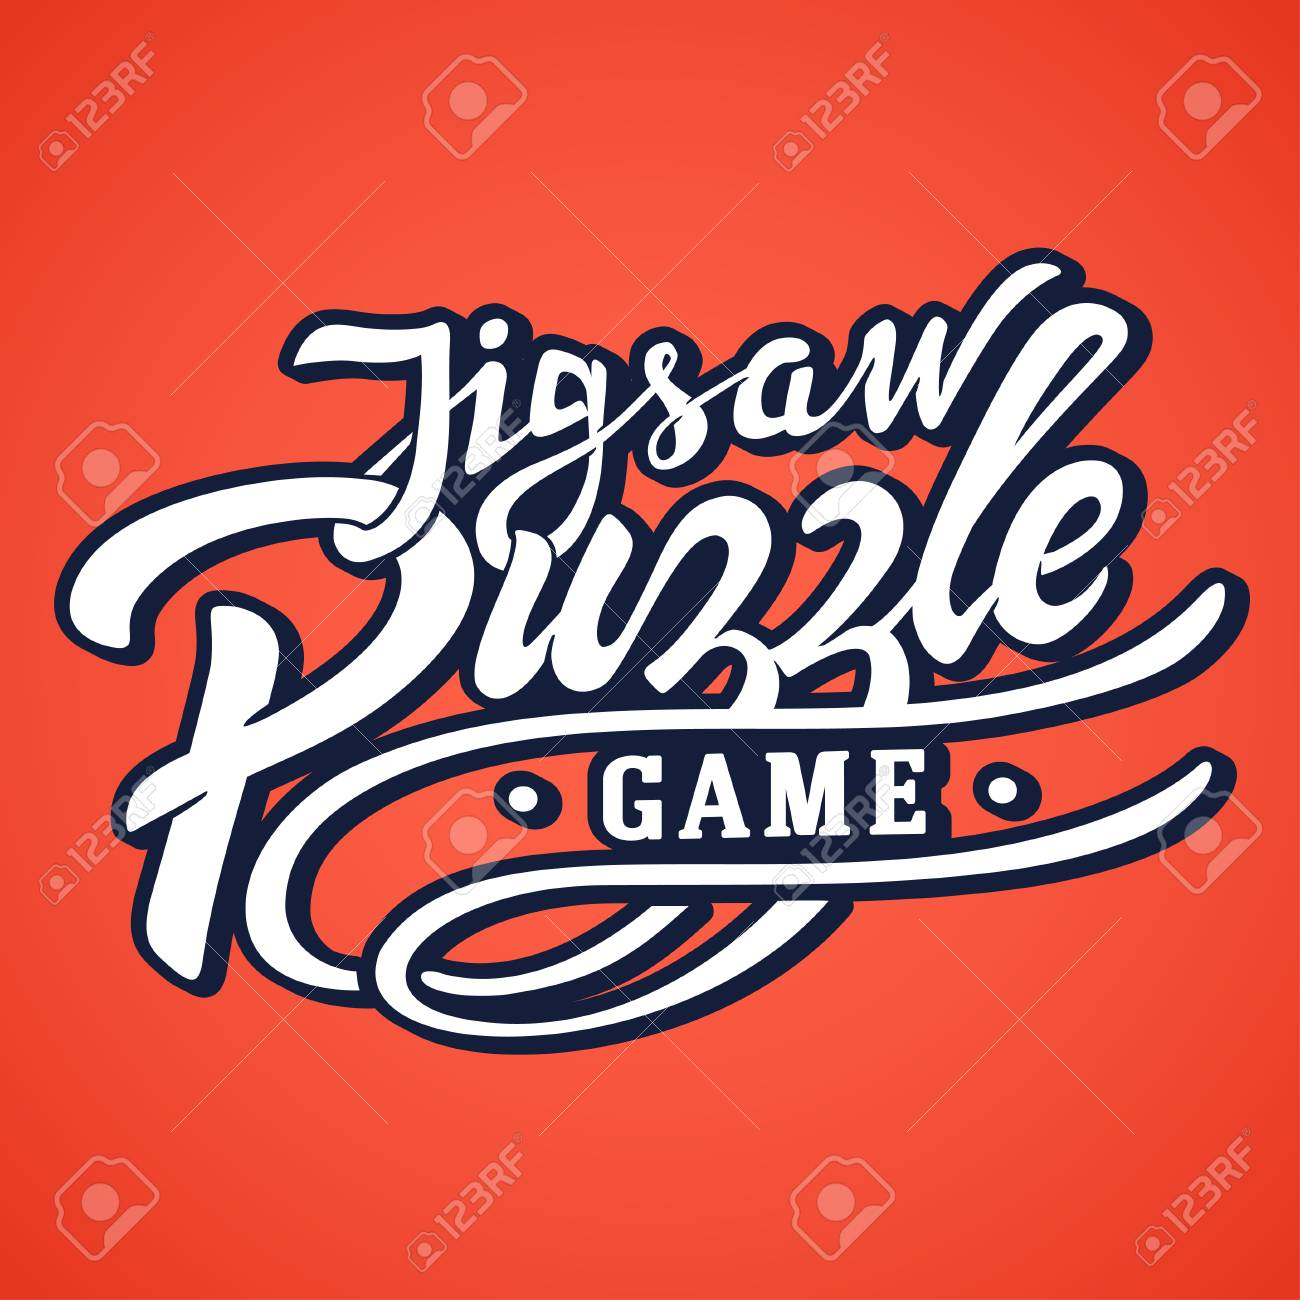 Jigsaw Puzzle Game Lettering Logo For Box Ready To Use